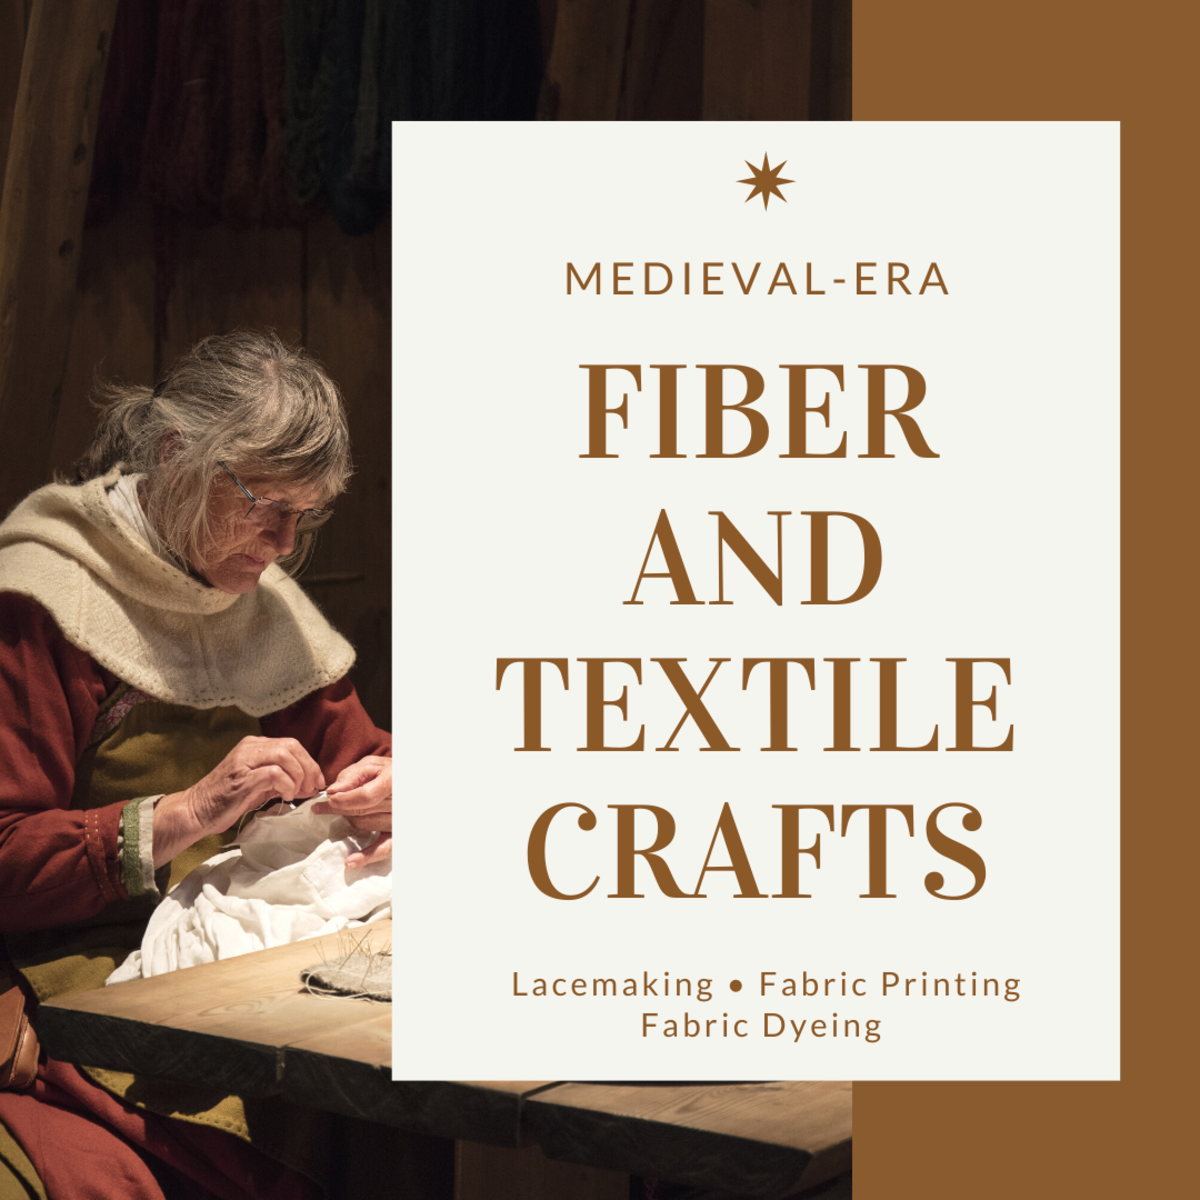 There were a variety of colorful and intricate ways of creating lace and fabric in the Middle Ages.